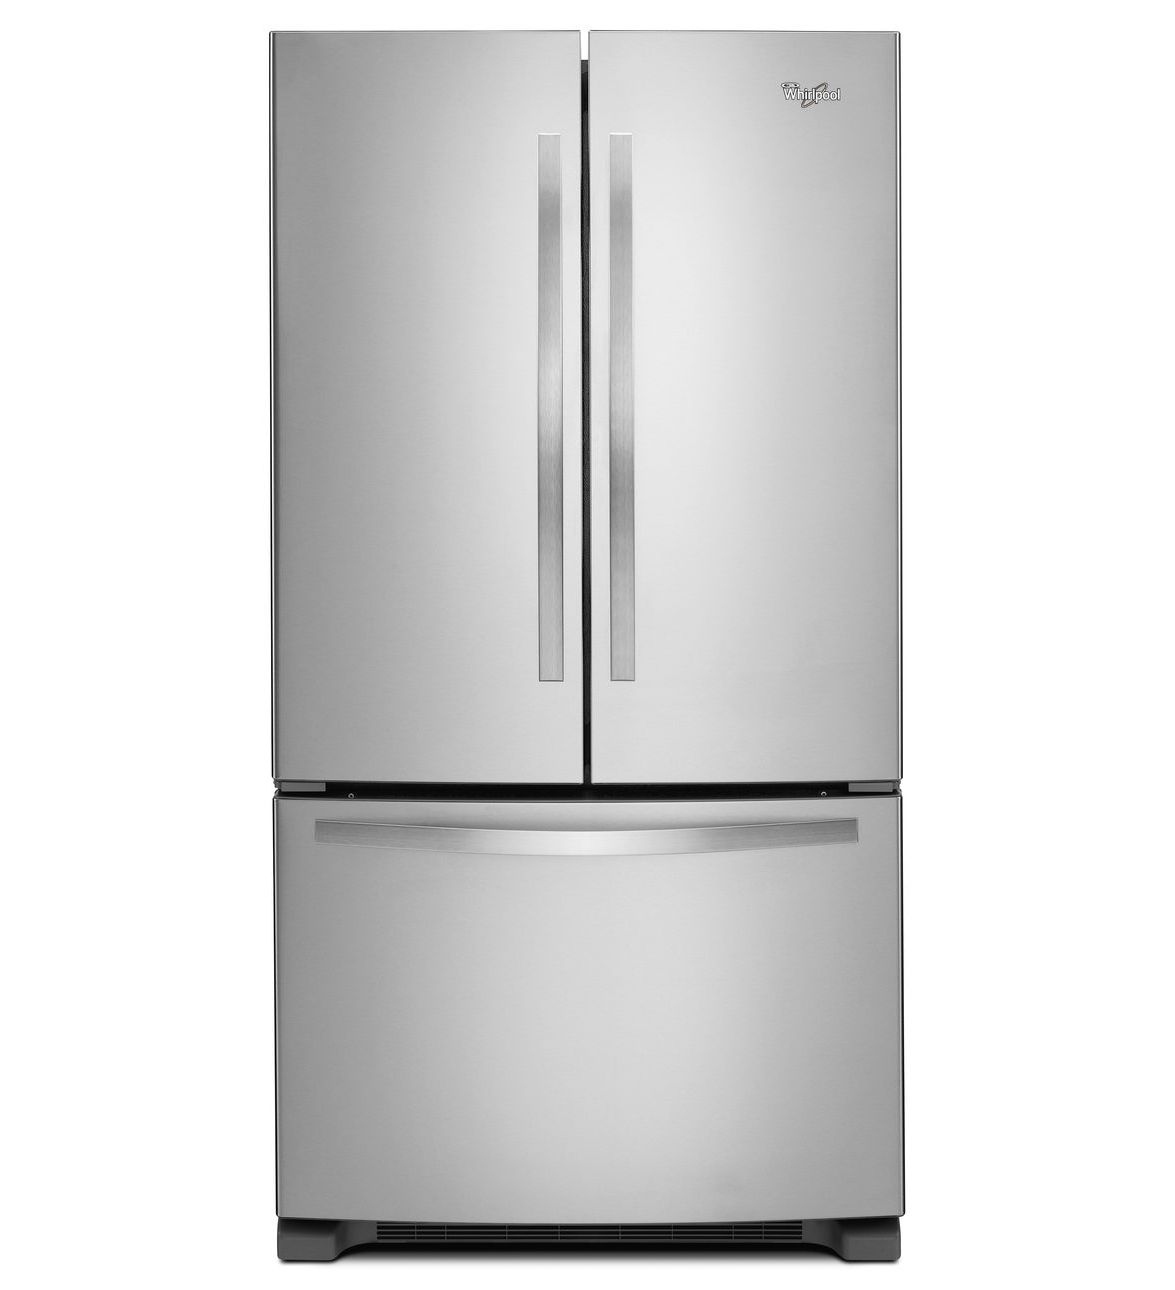 Delicieux WRF532SMBM Whirlpool 22 Cu. Ft. French Door Refrigerator With Accu Chill  System